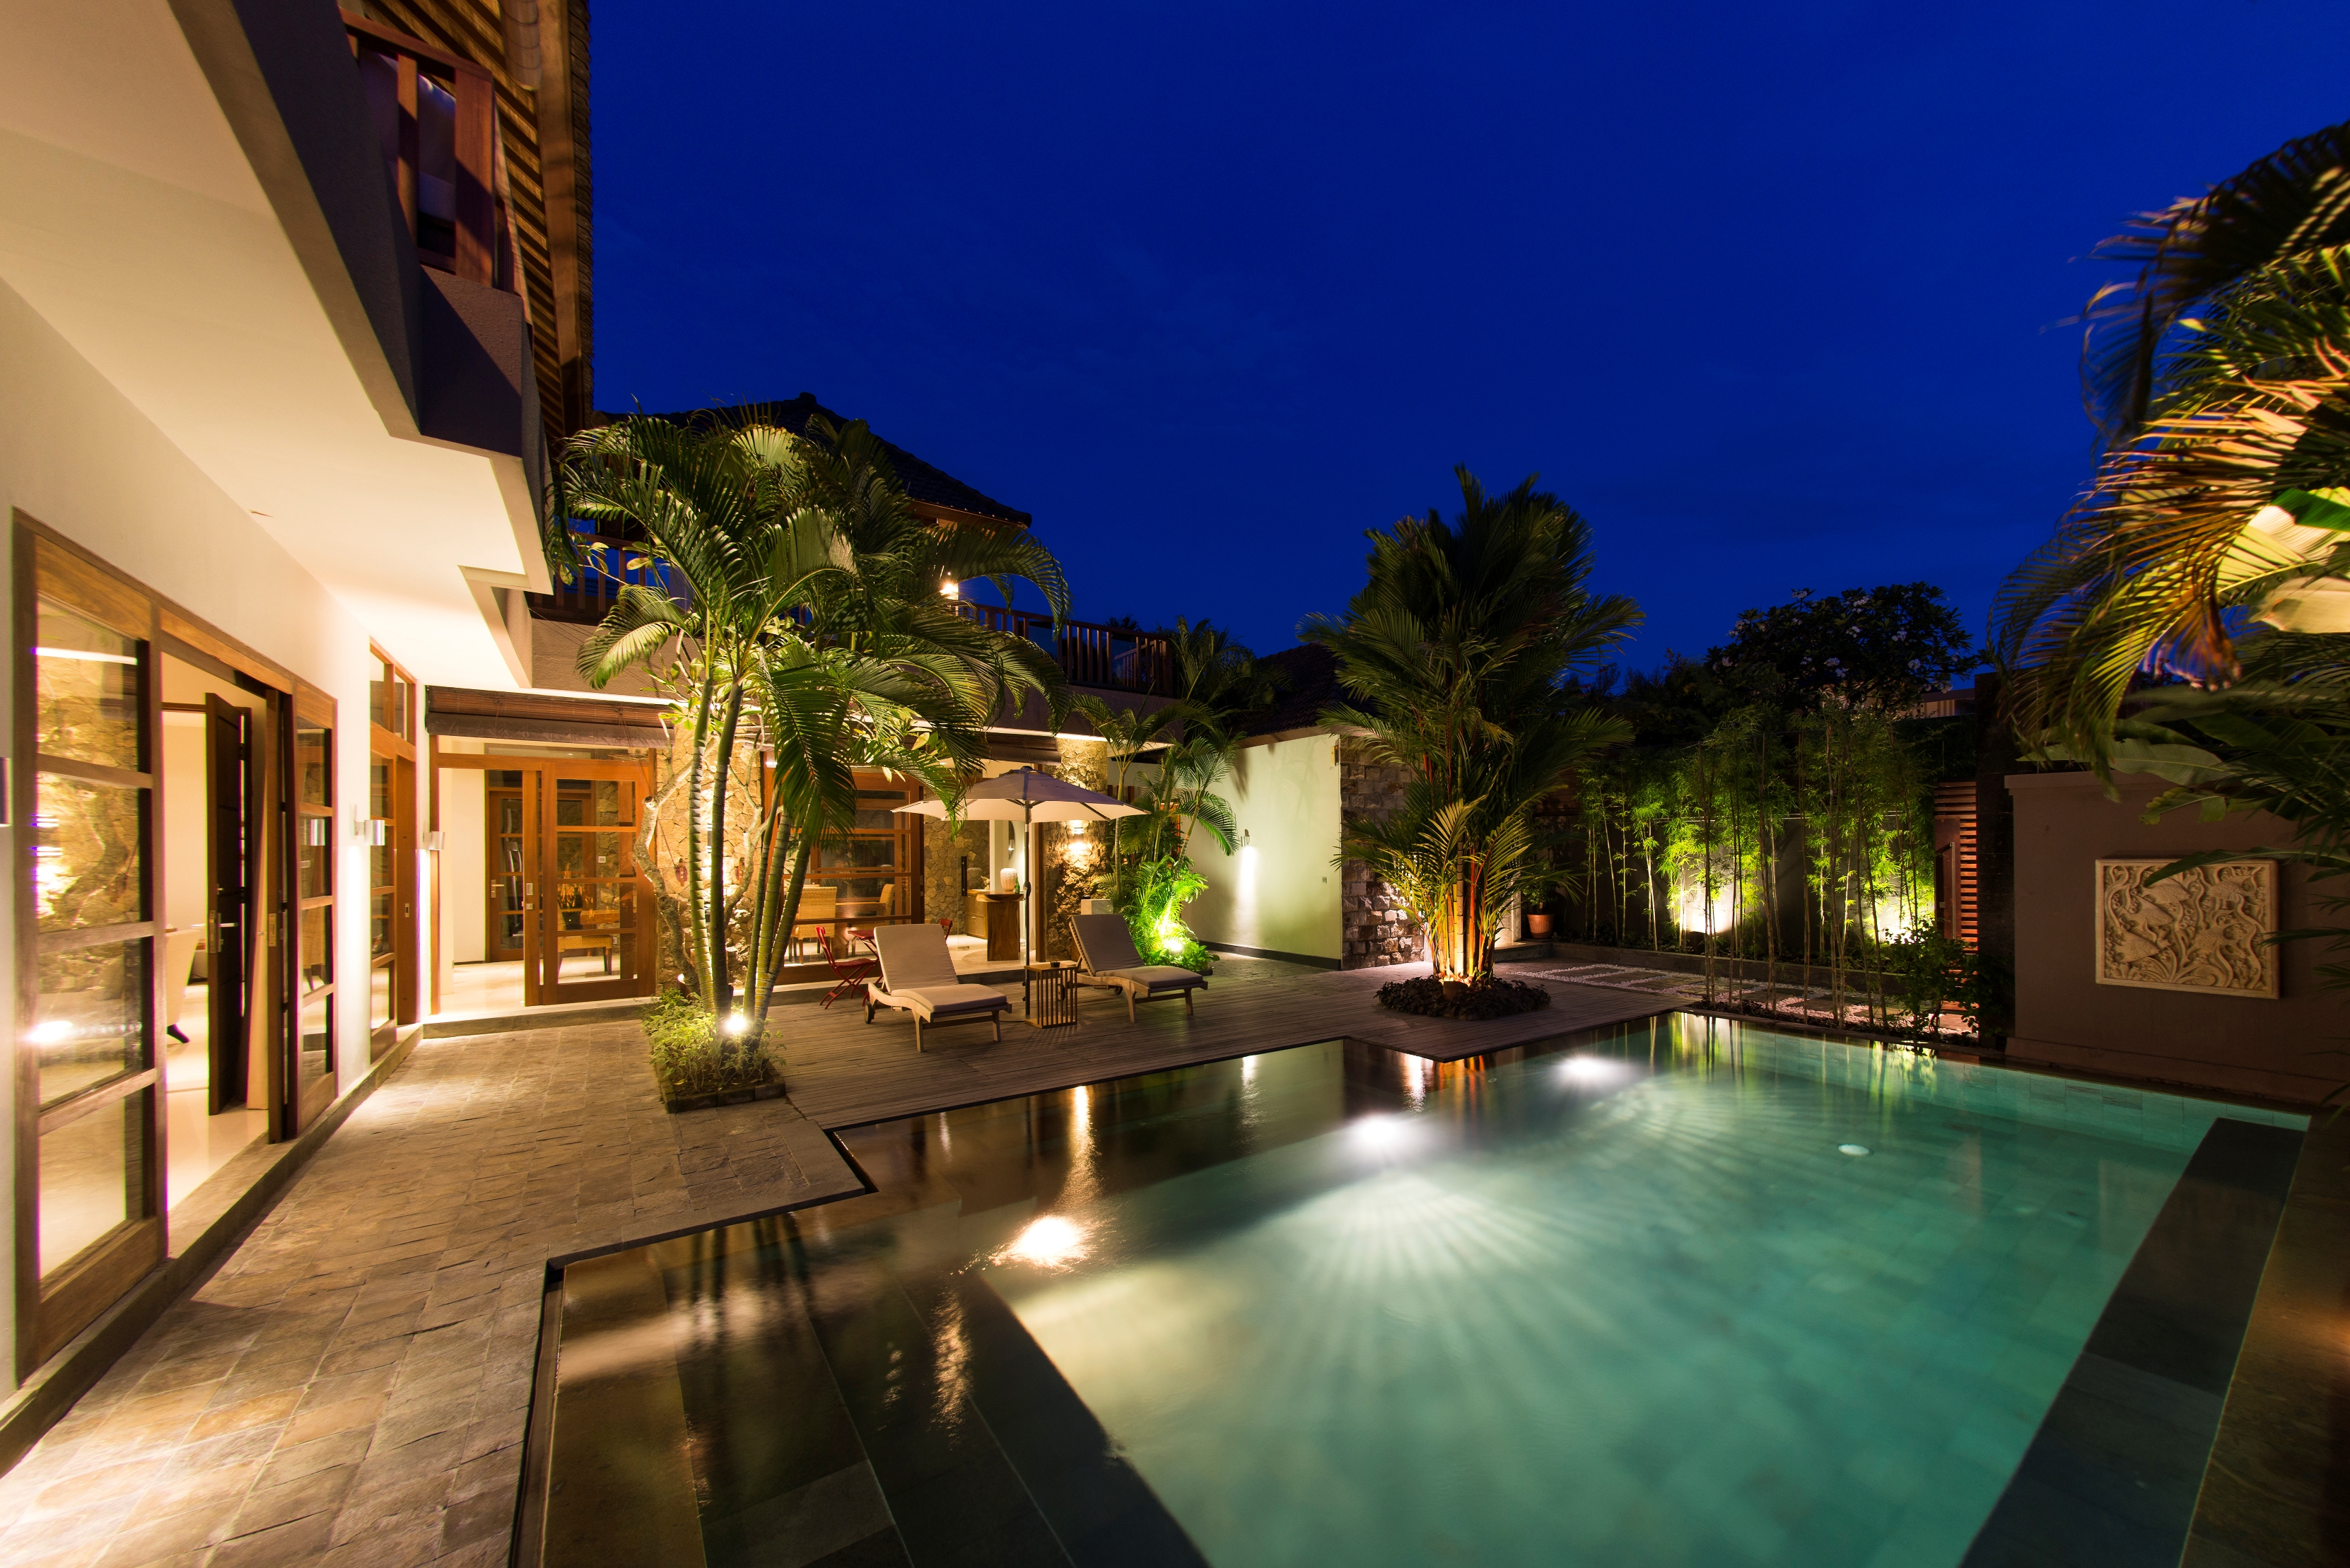 Villa M pool area